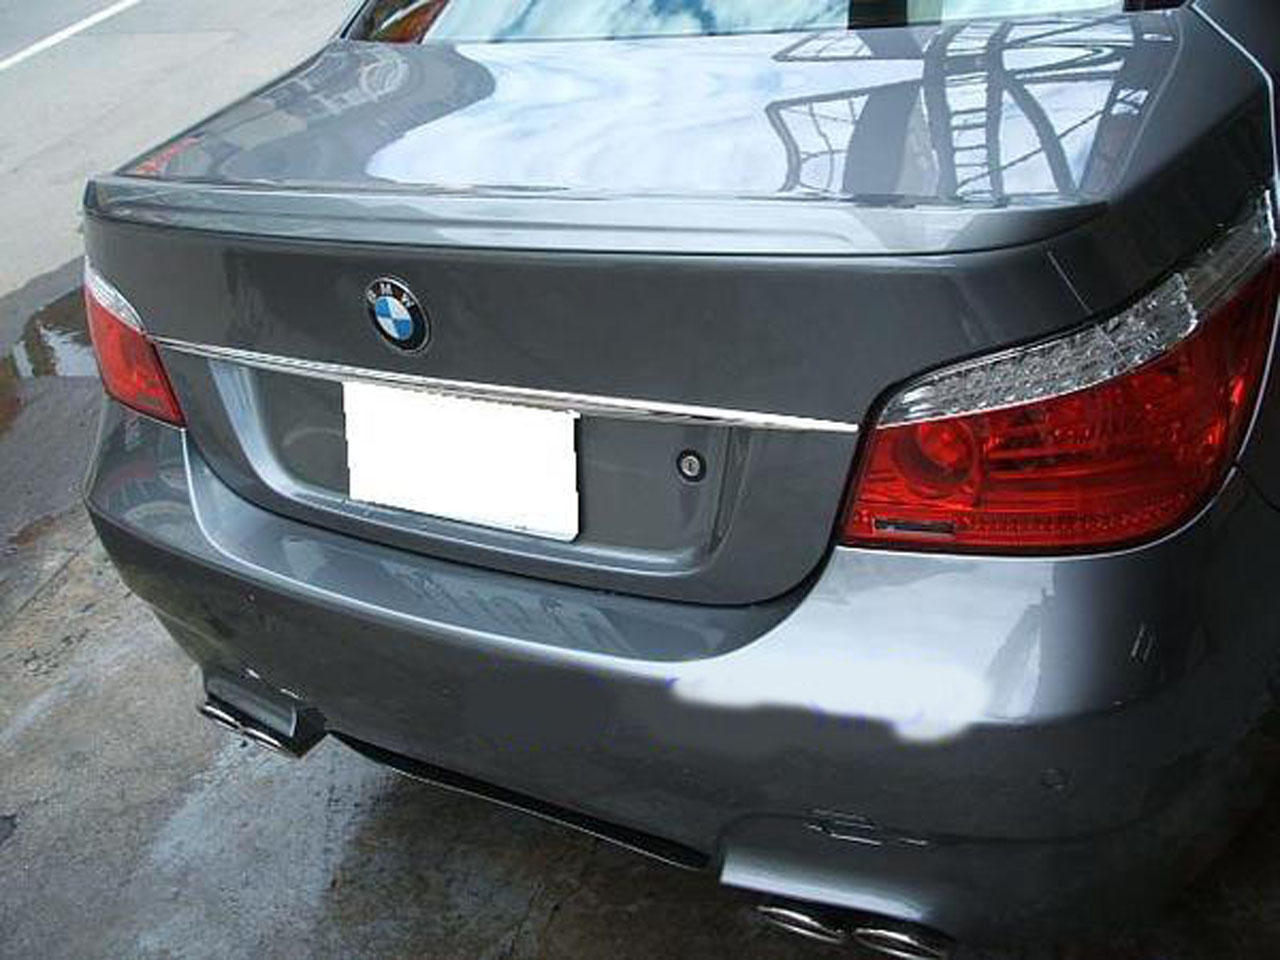 1 bmw e60 trunk deck lip spoiler m5 528i 535i 525i 475. Black Bedroom Furniture Sets. Home Design Ideas